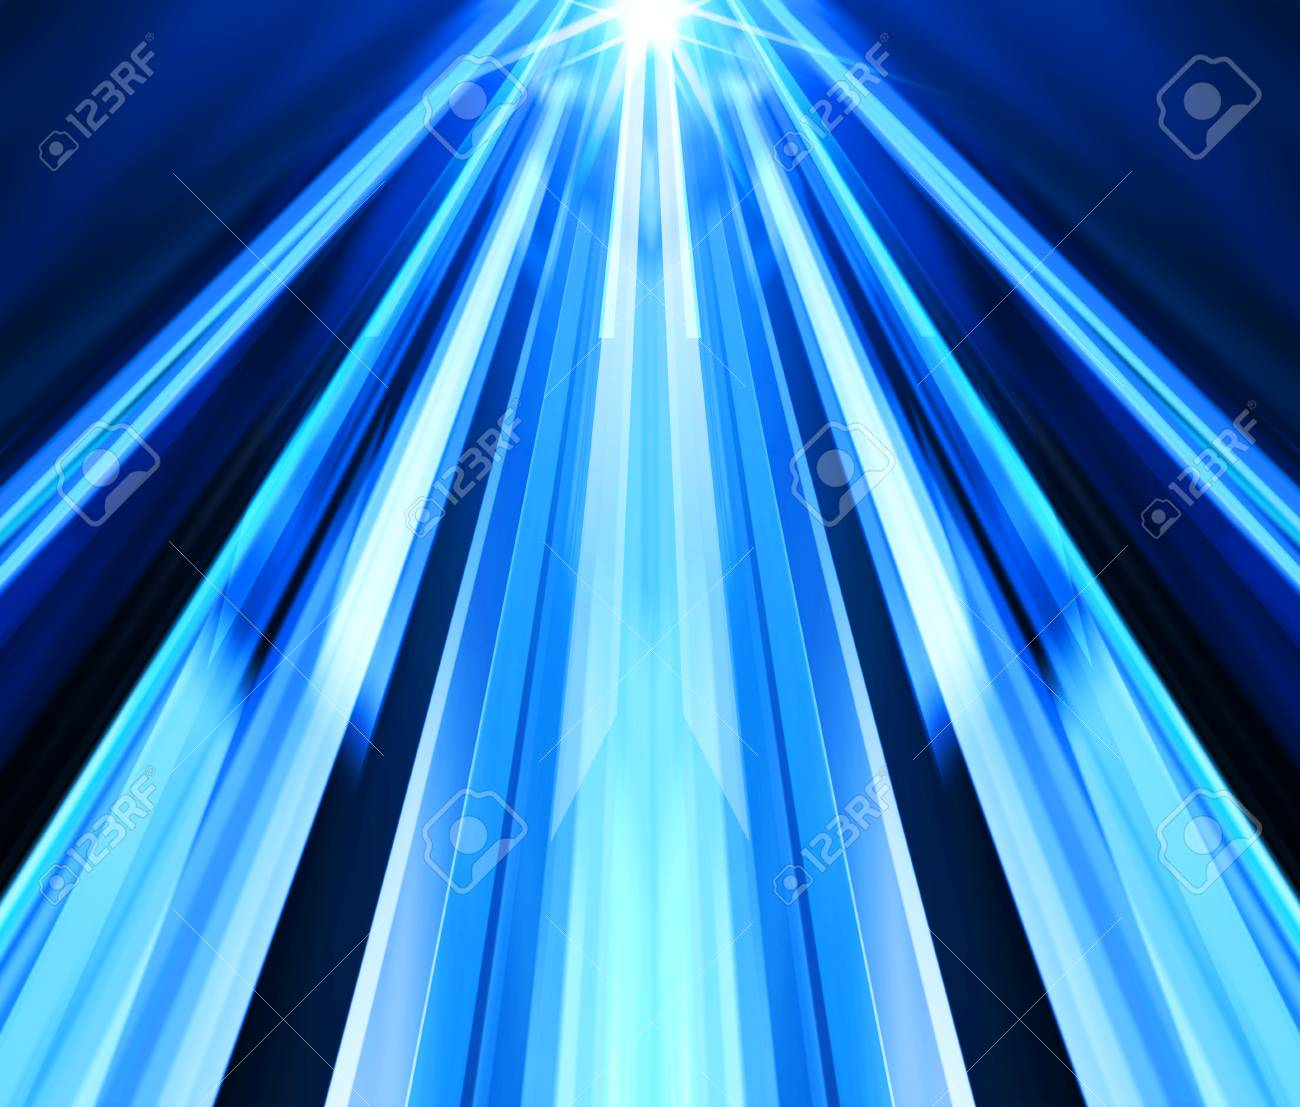 shine abstract background like technology templates texture with